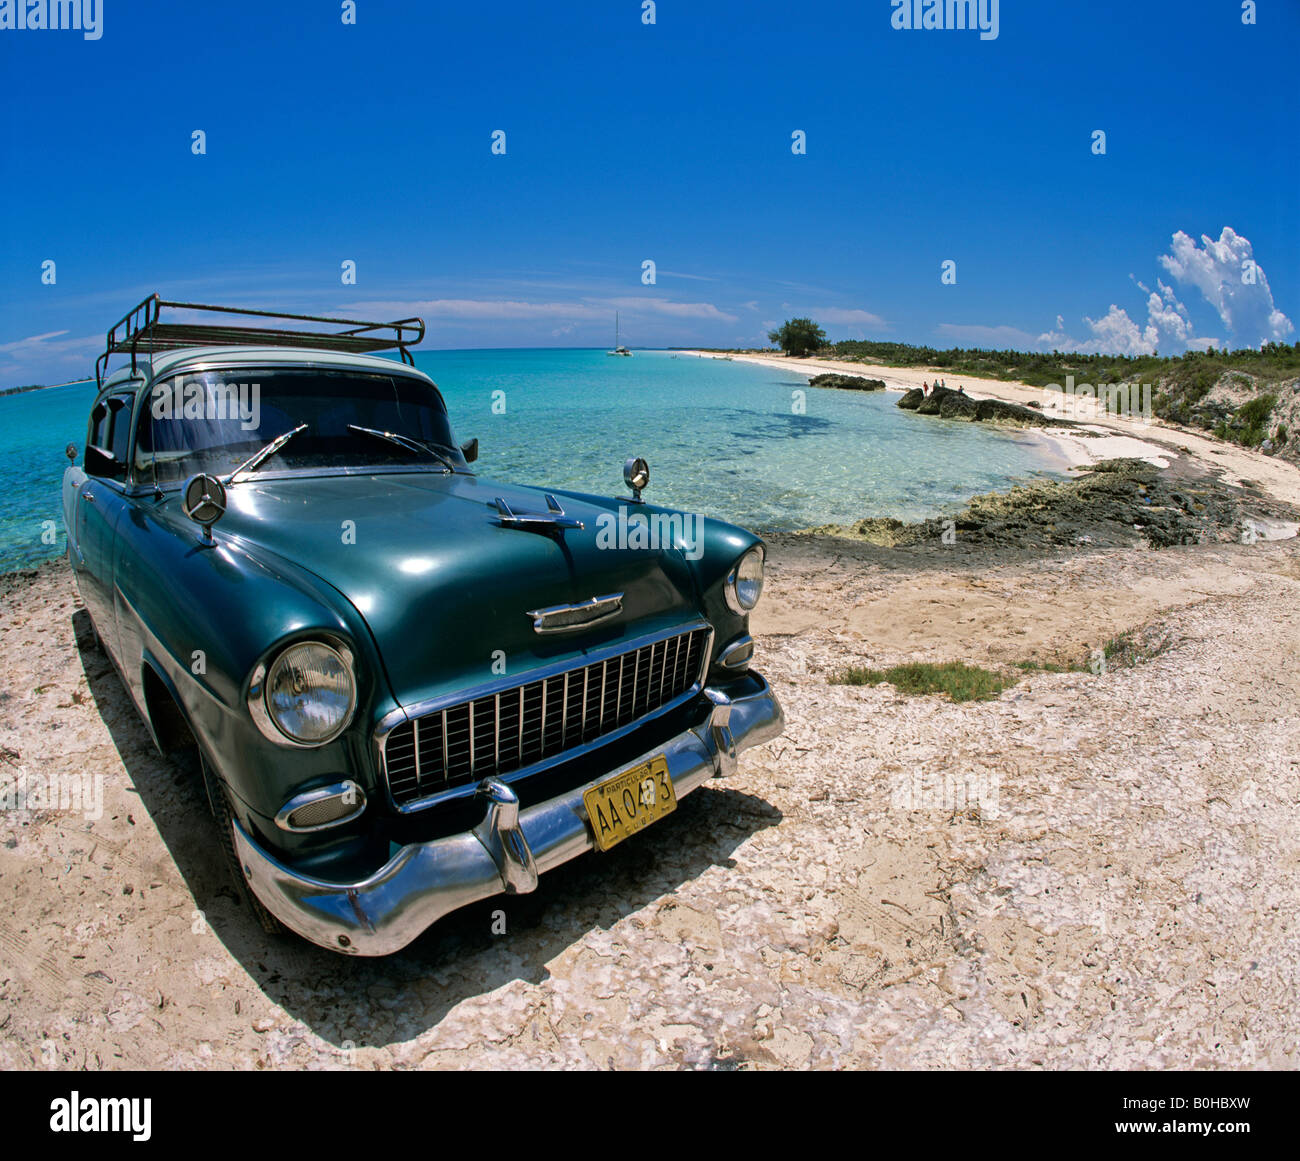 Vintage Car Playa Pillar Beach Cayo Guillermo Island Cuba Carribean